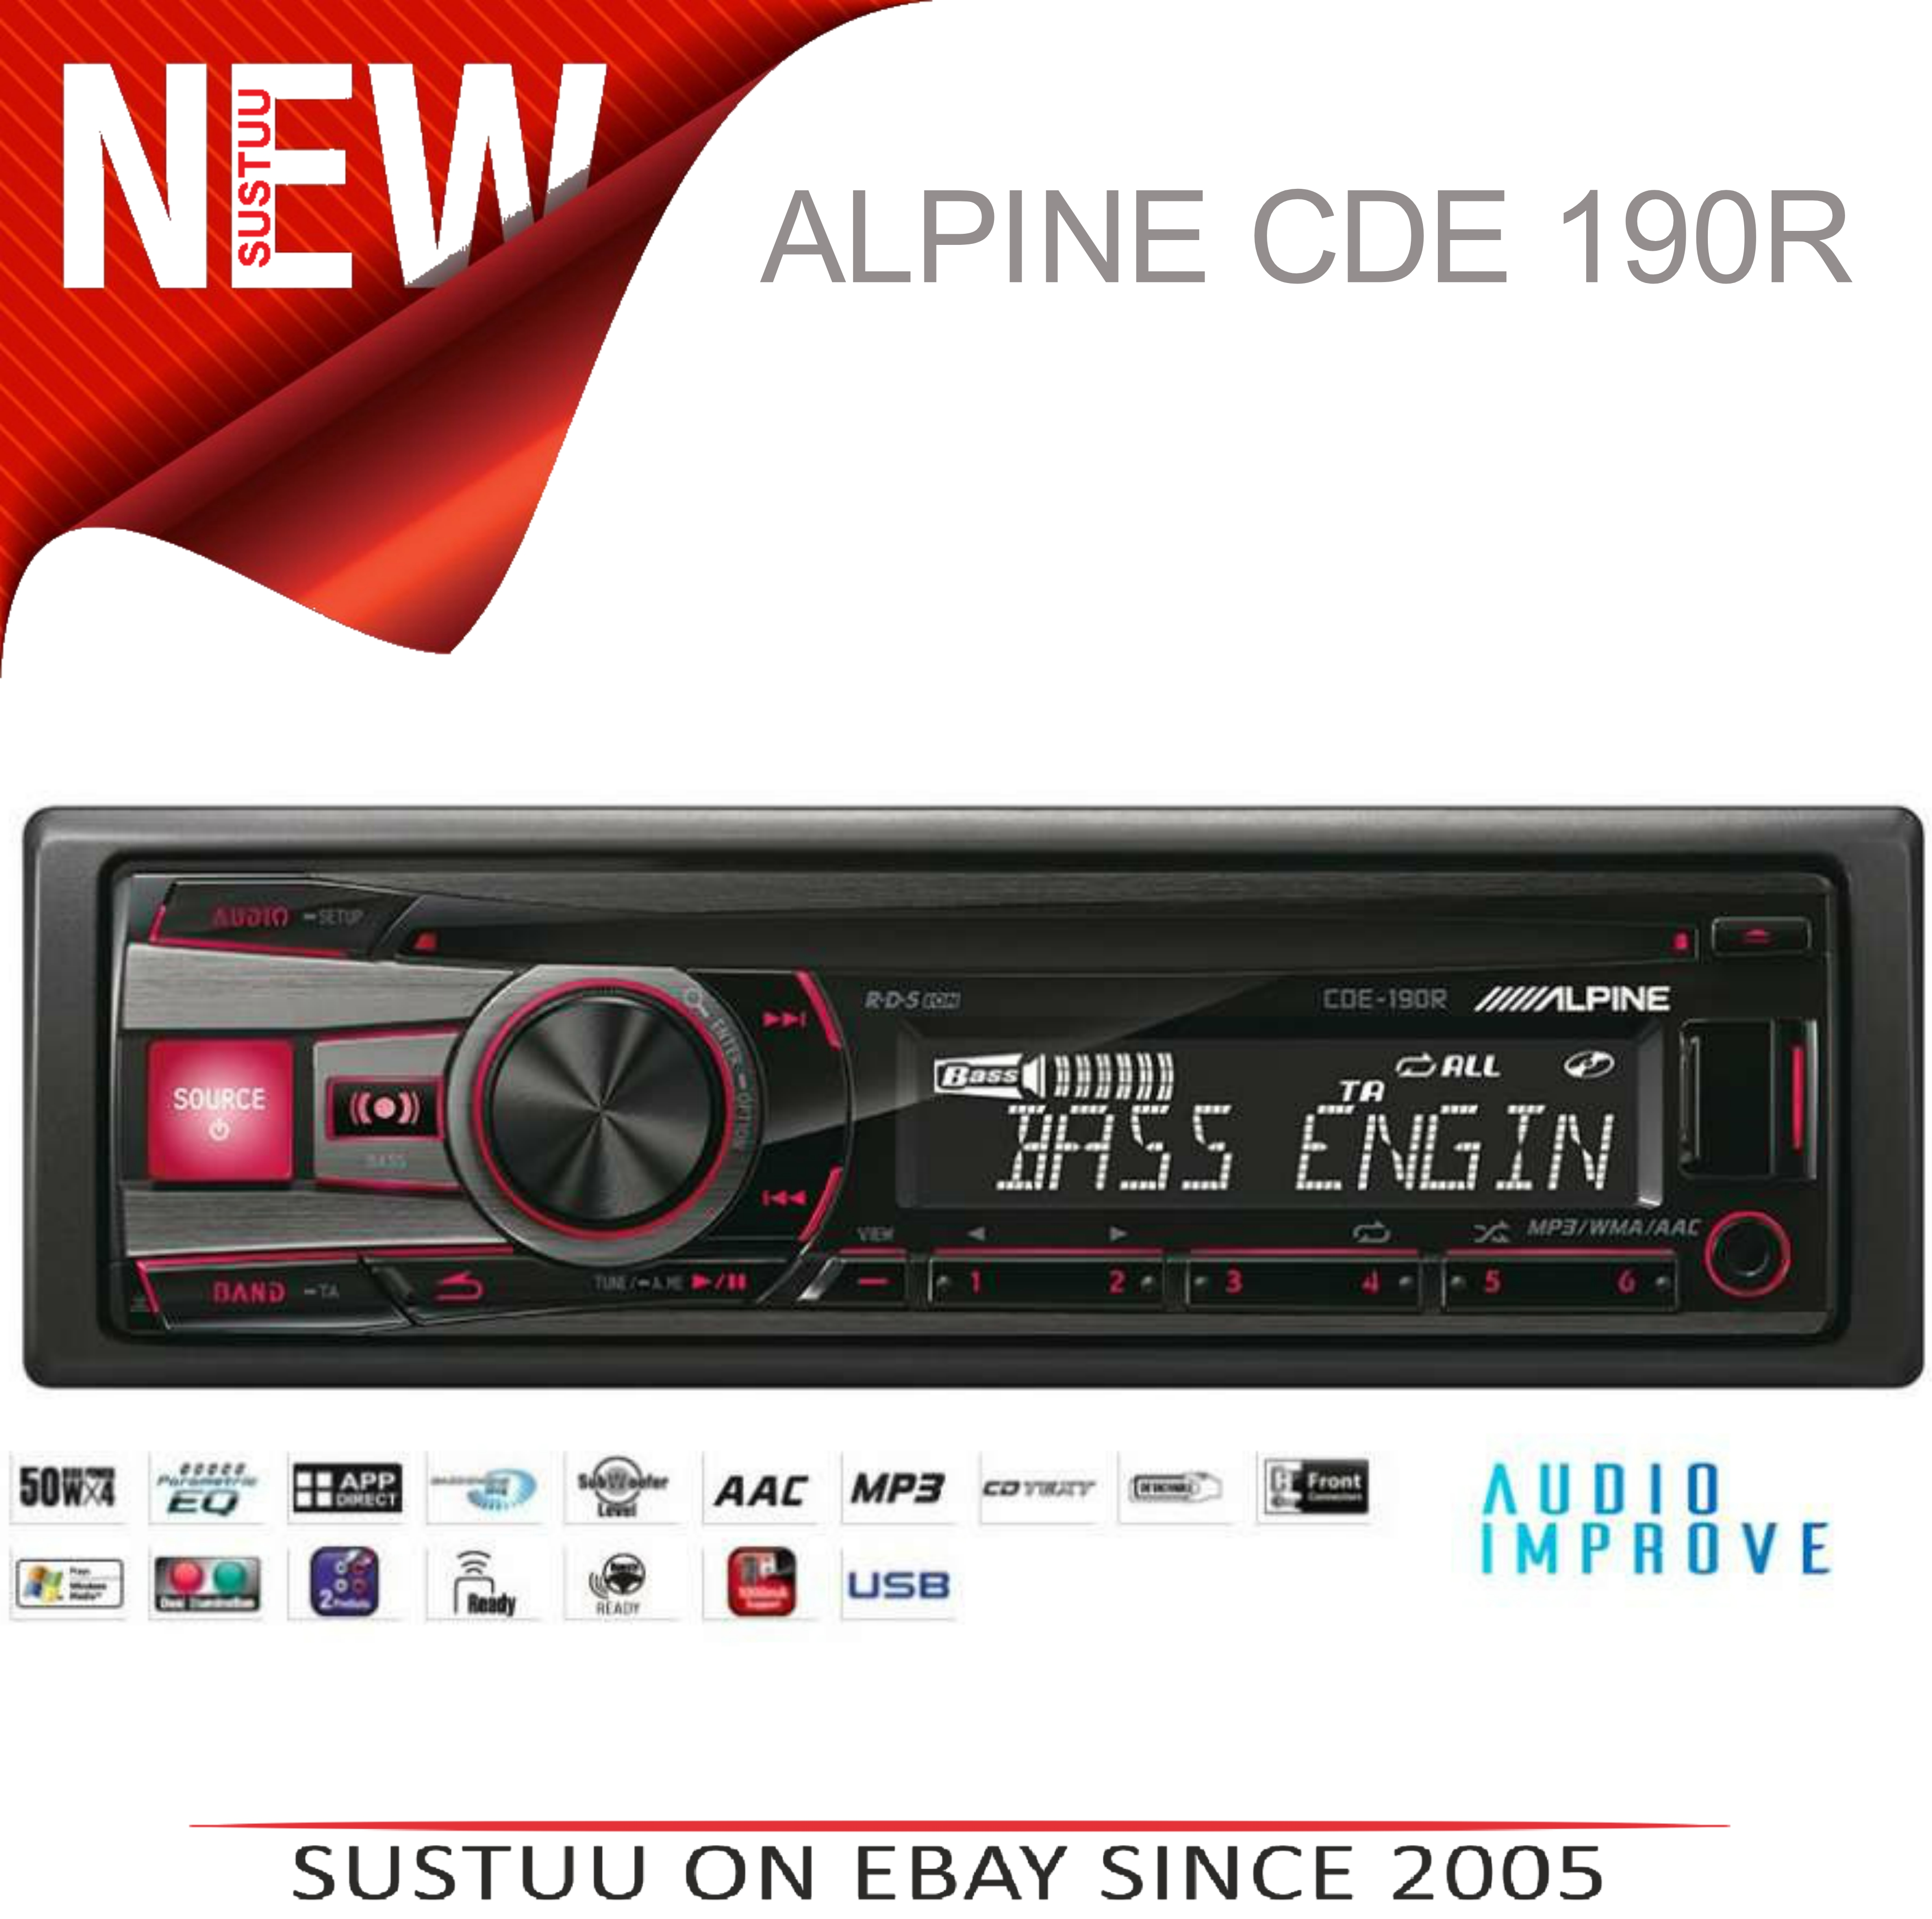 Genuine Alpine CDE 190R Car Media Receiver autoradio CD/USB 2 rca out-display